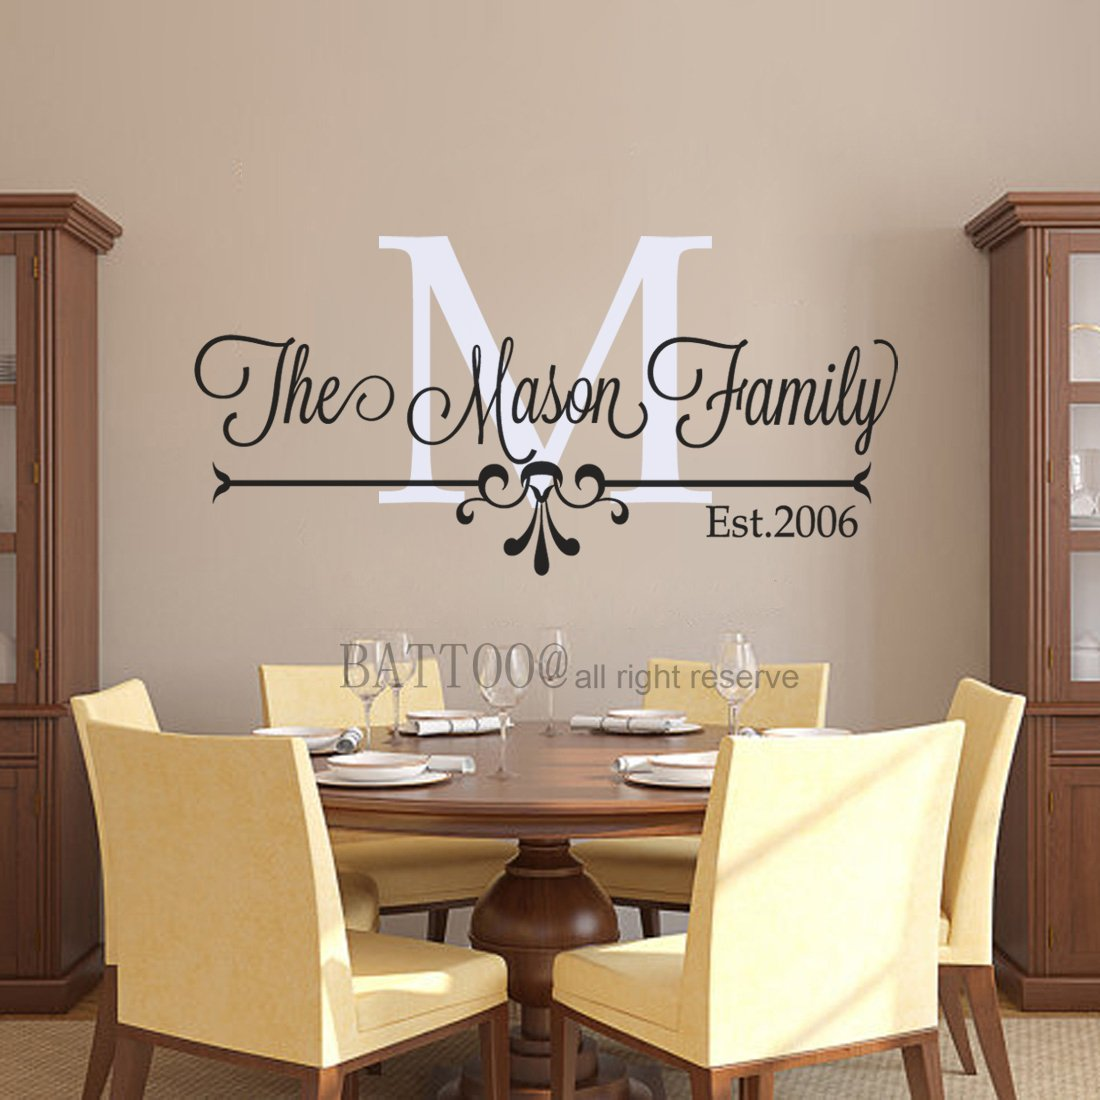 Battoo family name wall decal custom wall decal living room decor family established decal personalized wall decals vinyl 50 wide by 22 tall plus free